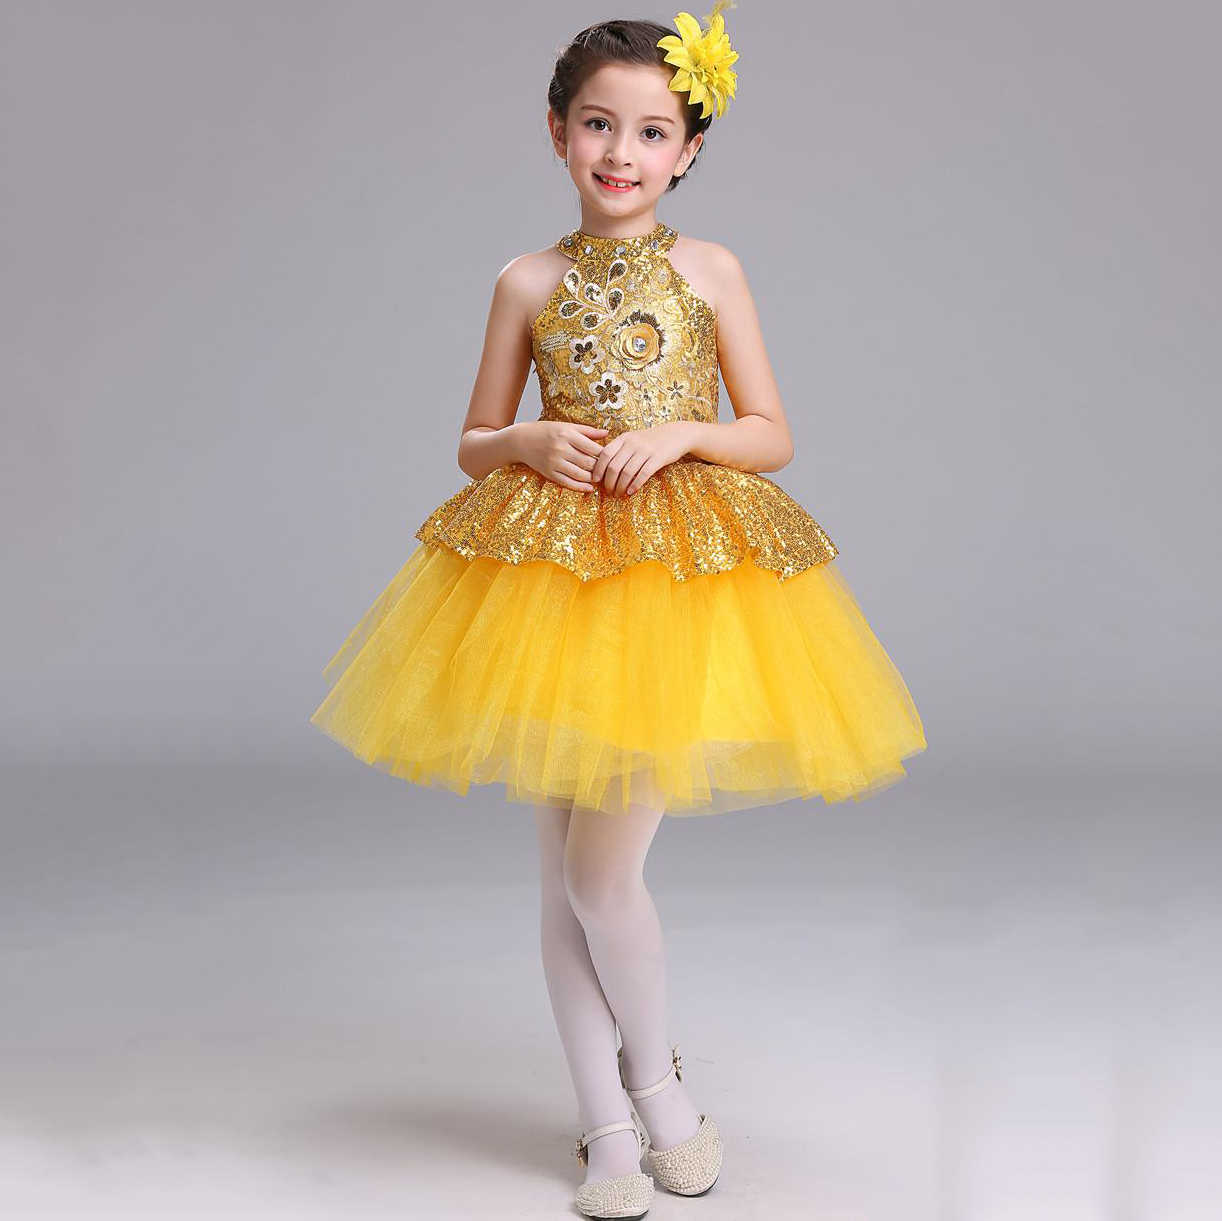 52ce3bbd356e5 Detail Feedback Questions about Children Summer Clothing Girls Bling ...